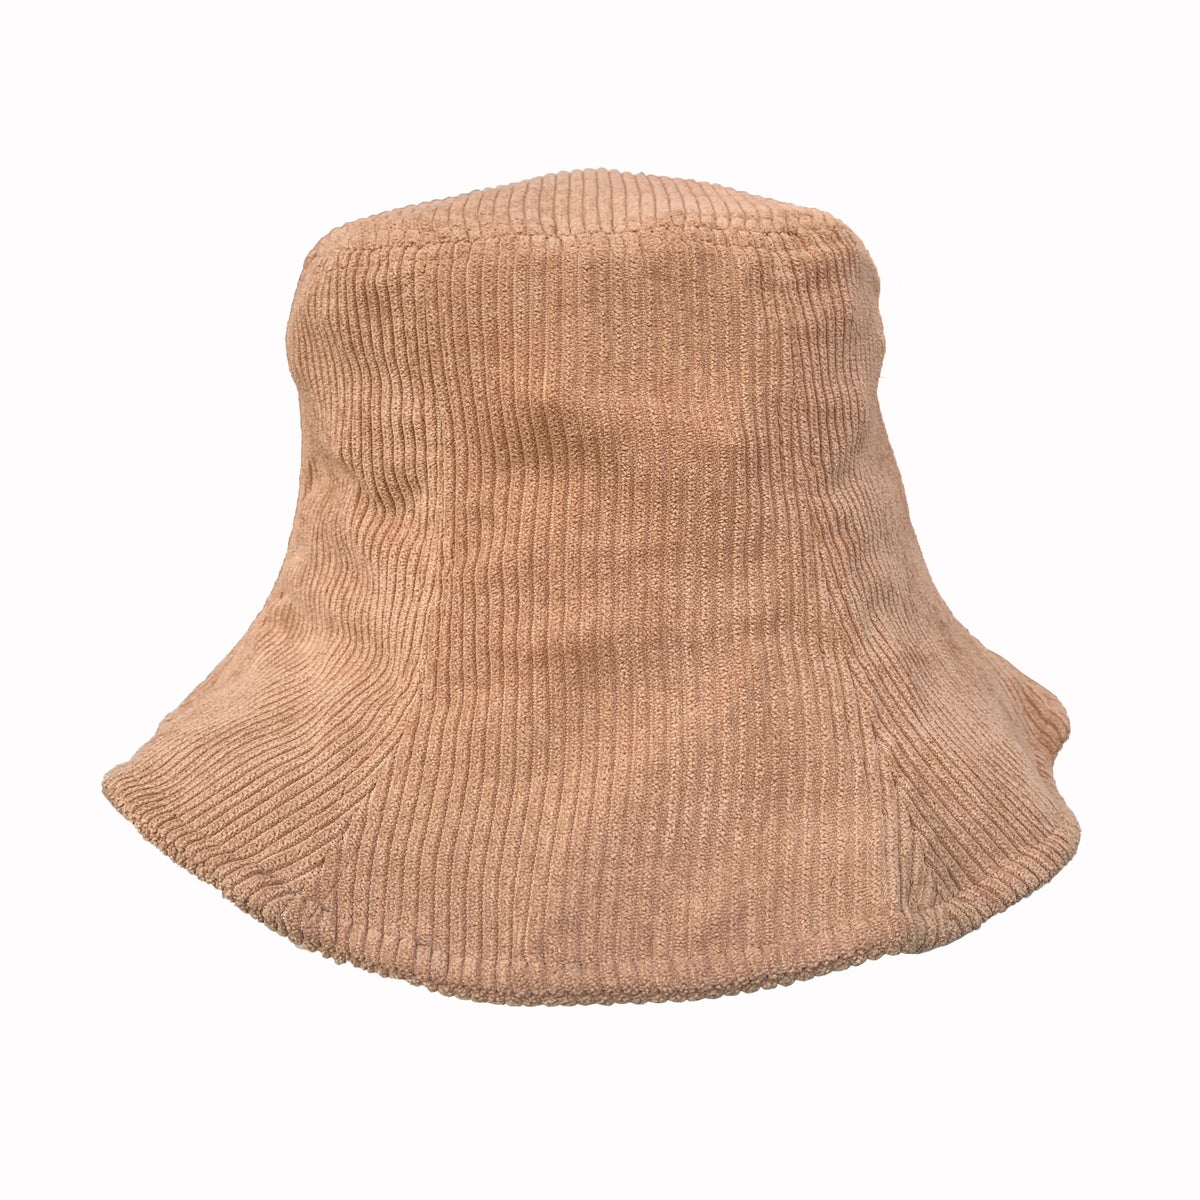 Image of Corduroy Bucket Hat. Sand.( Was £23 now £18.40)